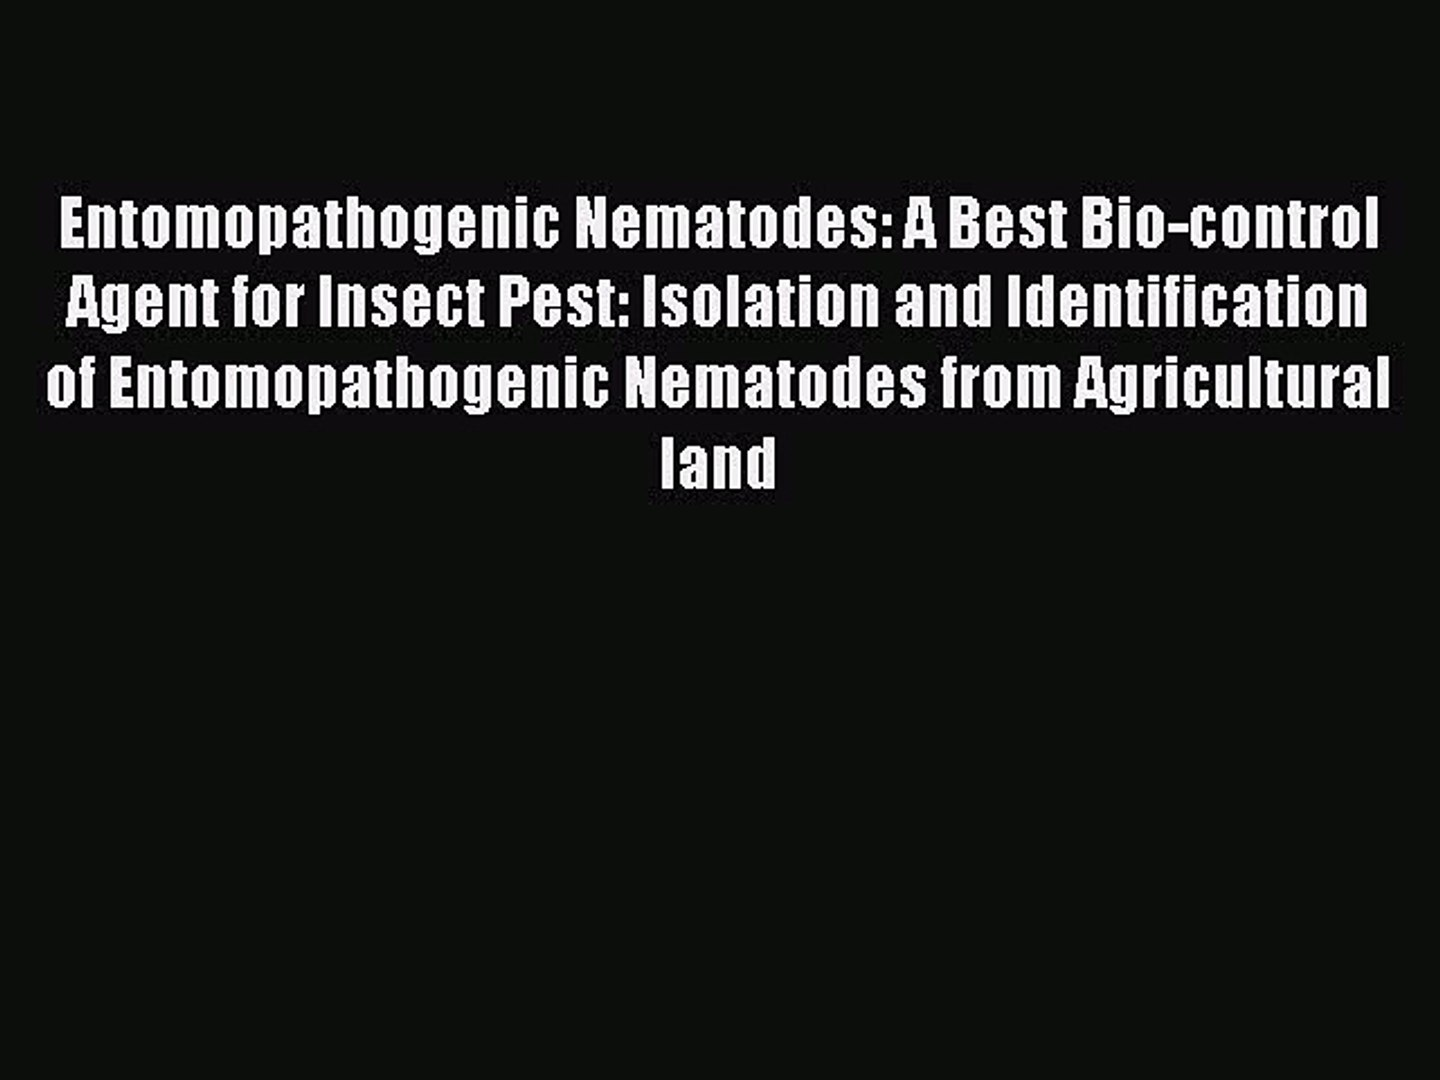 Download Entomopathogenic Nematodes: A Best Bio-control Agent for Insect Pest: Isolation and